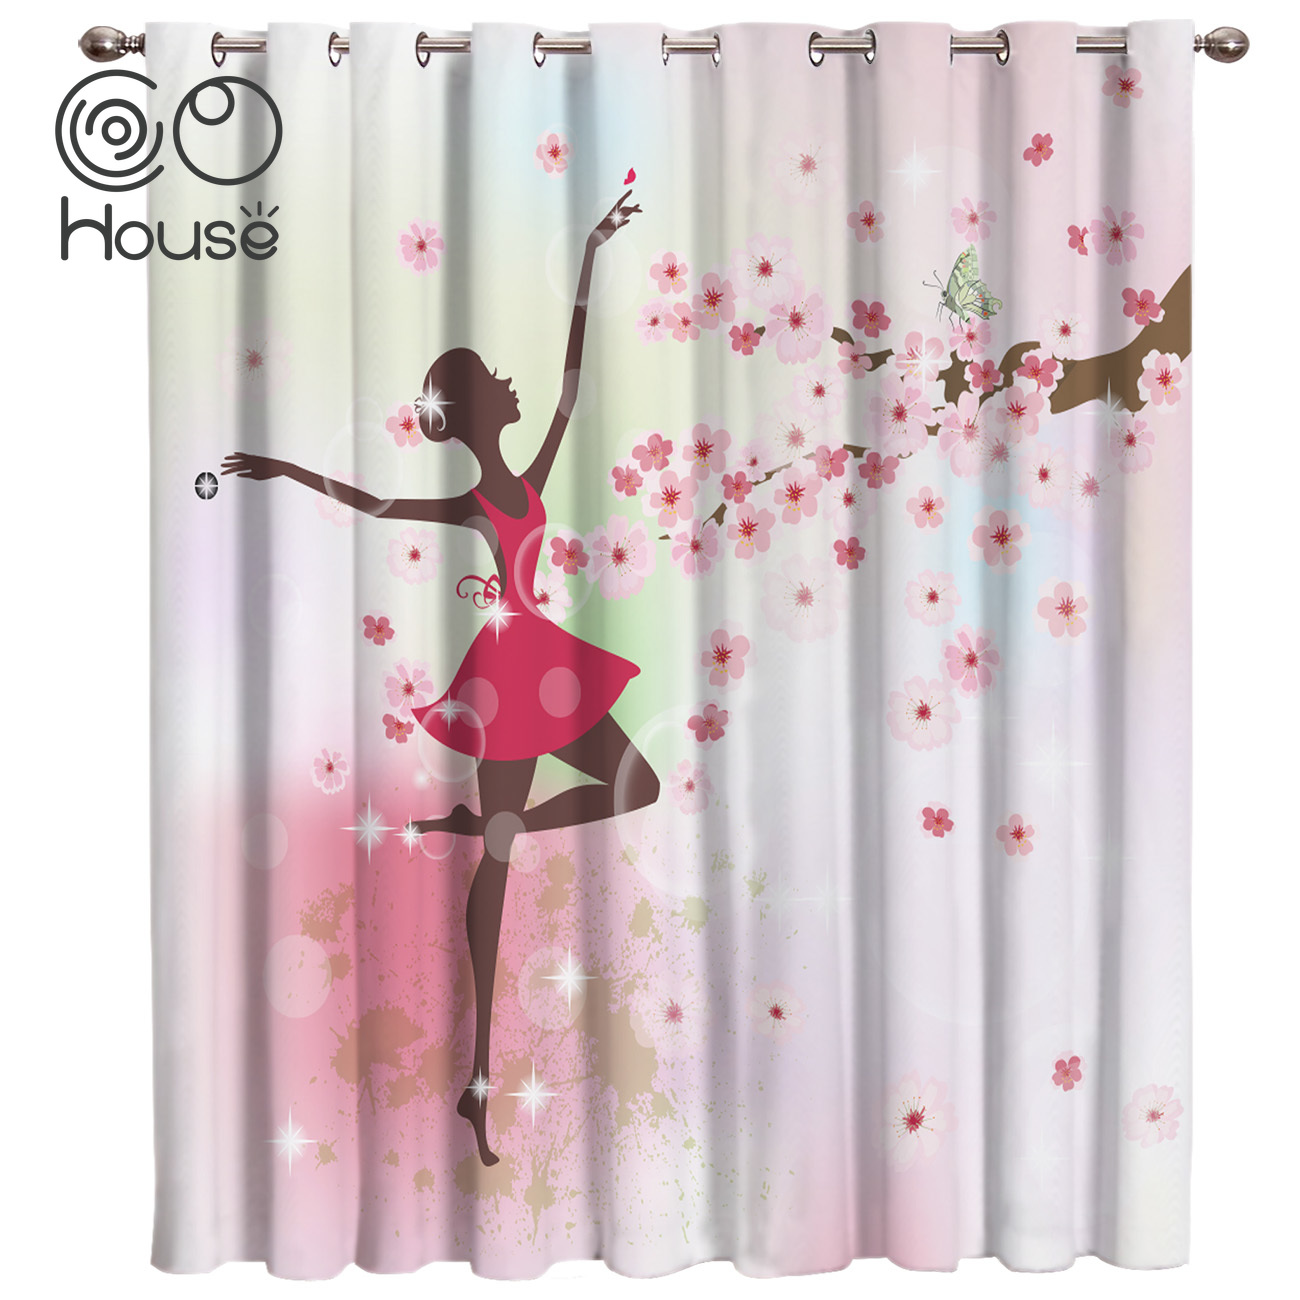 Cocohouse Beauti Ballet Dancer Room Curtains Large Window Window Curtains Dark Curtain Rod Bedroom Curtains Bathroom Outdoor Curtains Aliexpress